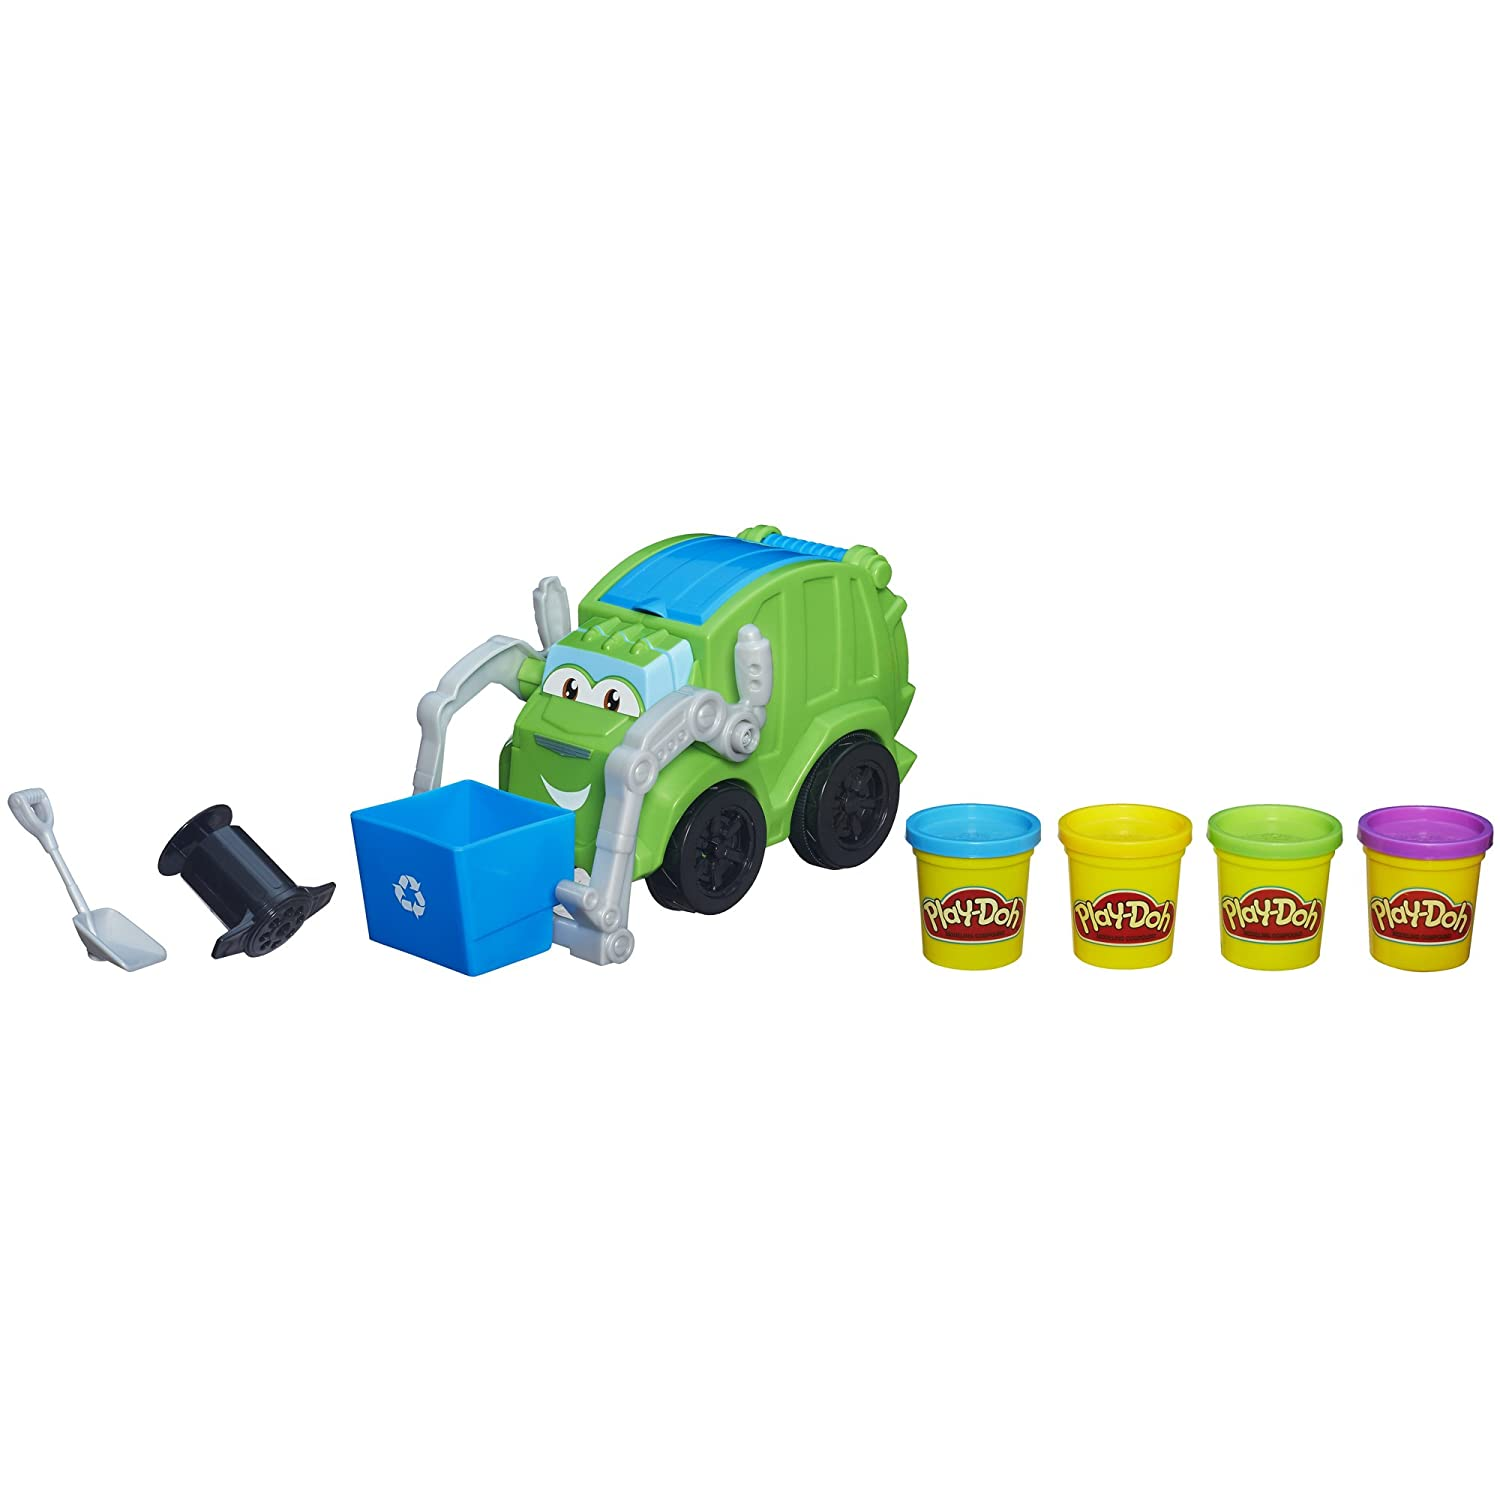 Get ready garbage truck coloring book - Amazon Com Play Doh Trash Tossin Rowdy The Garbage Truck Toys Games